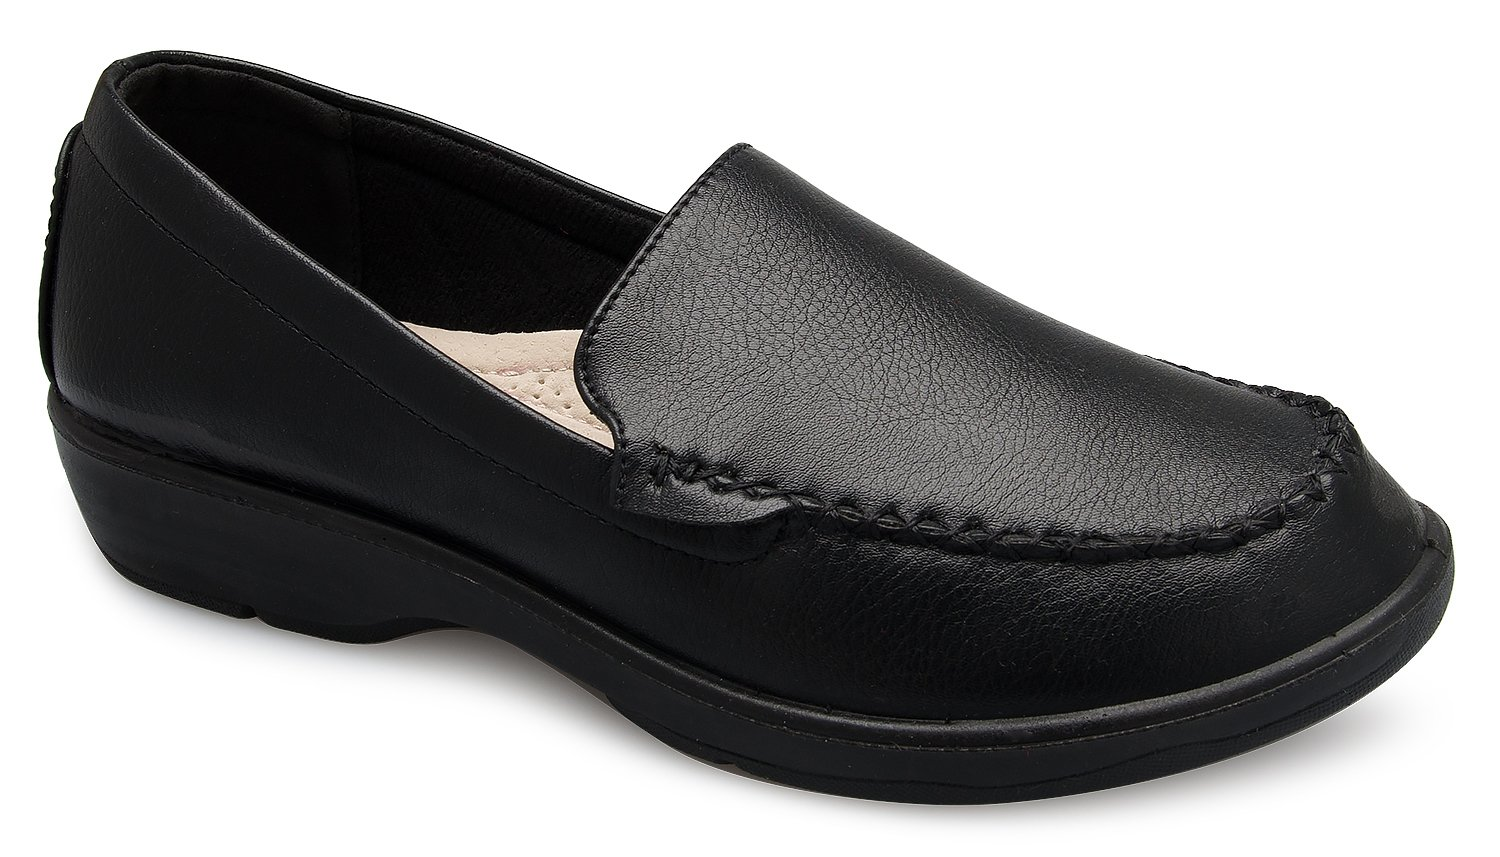 Olivia K Women's Easy Slip On Work Office Uniform Resistant Flatform Daily Life Shoes by Olivia K